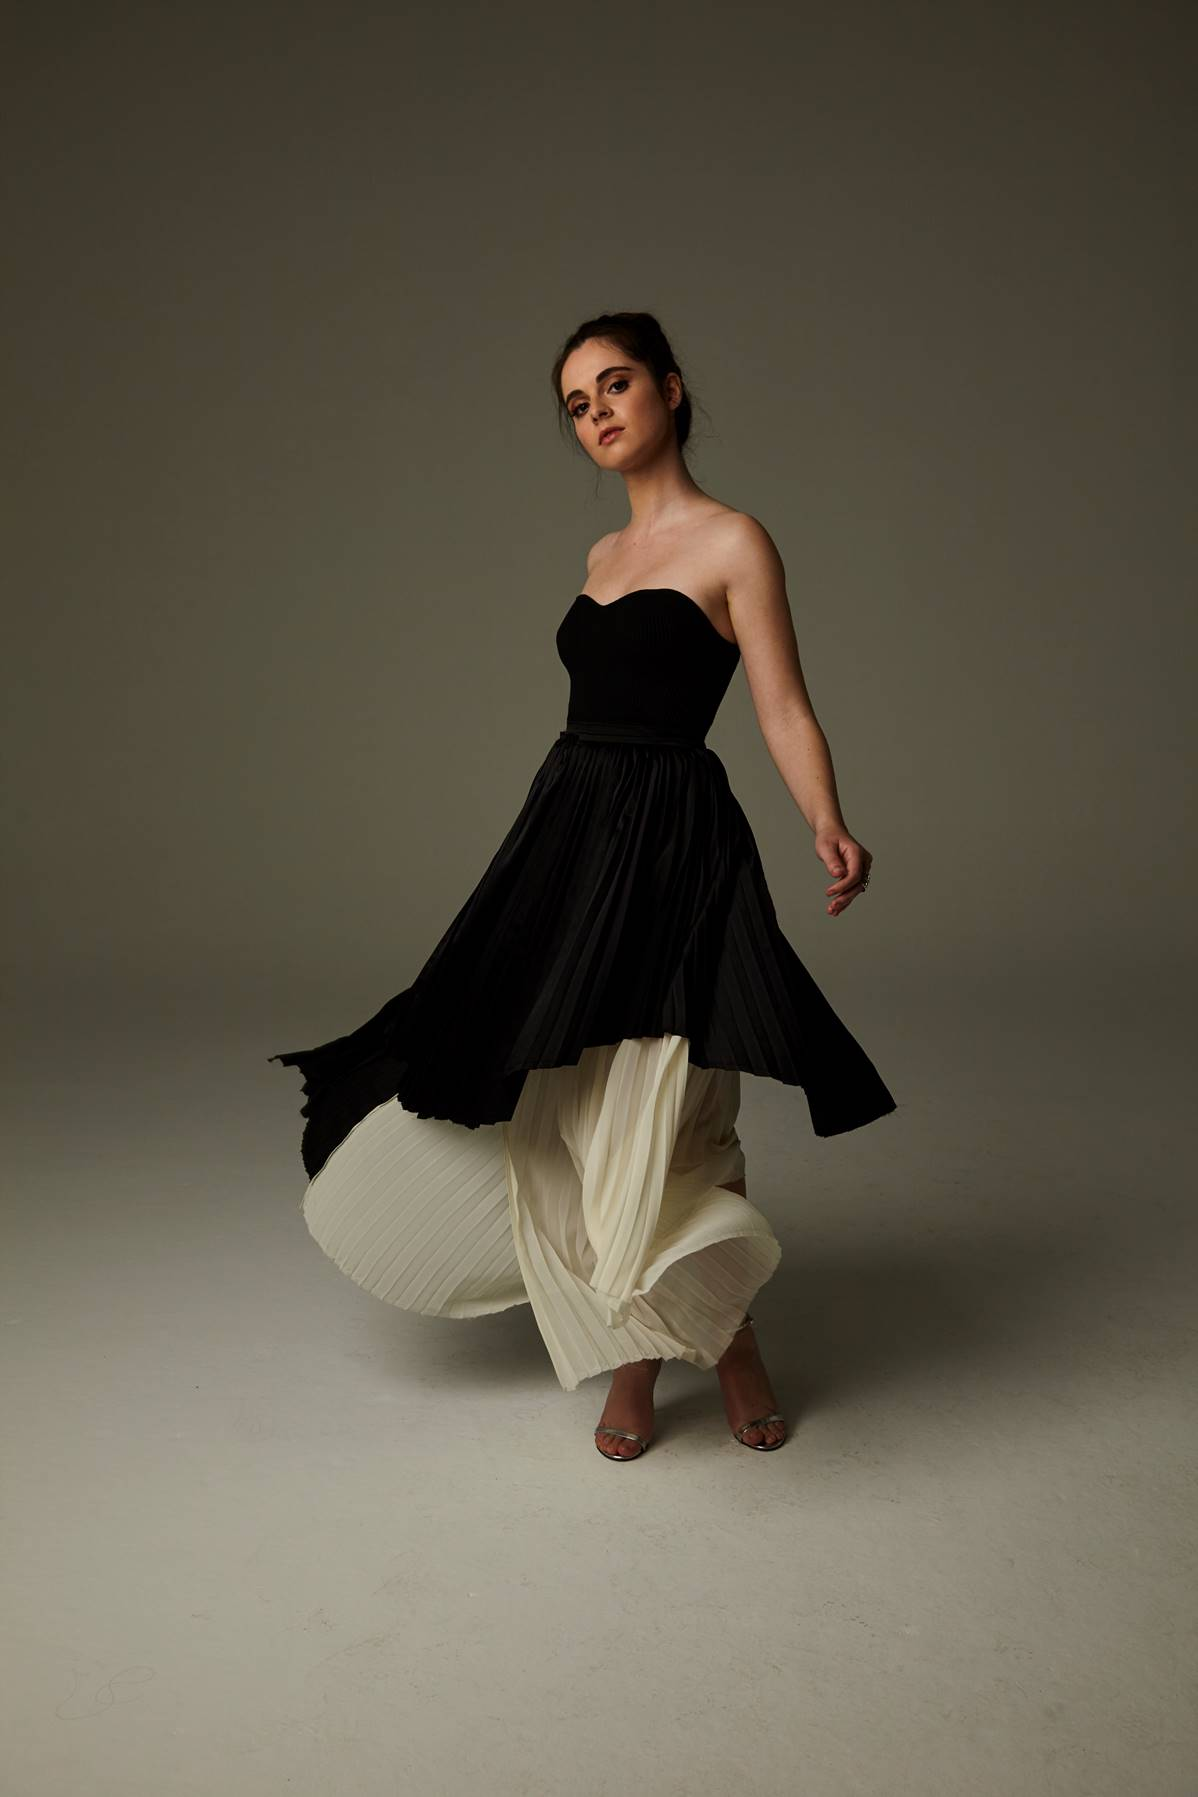 A picture of a girlin a black strapless, flowy dress